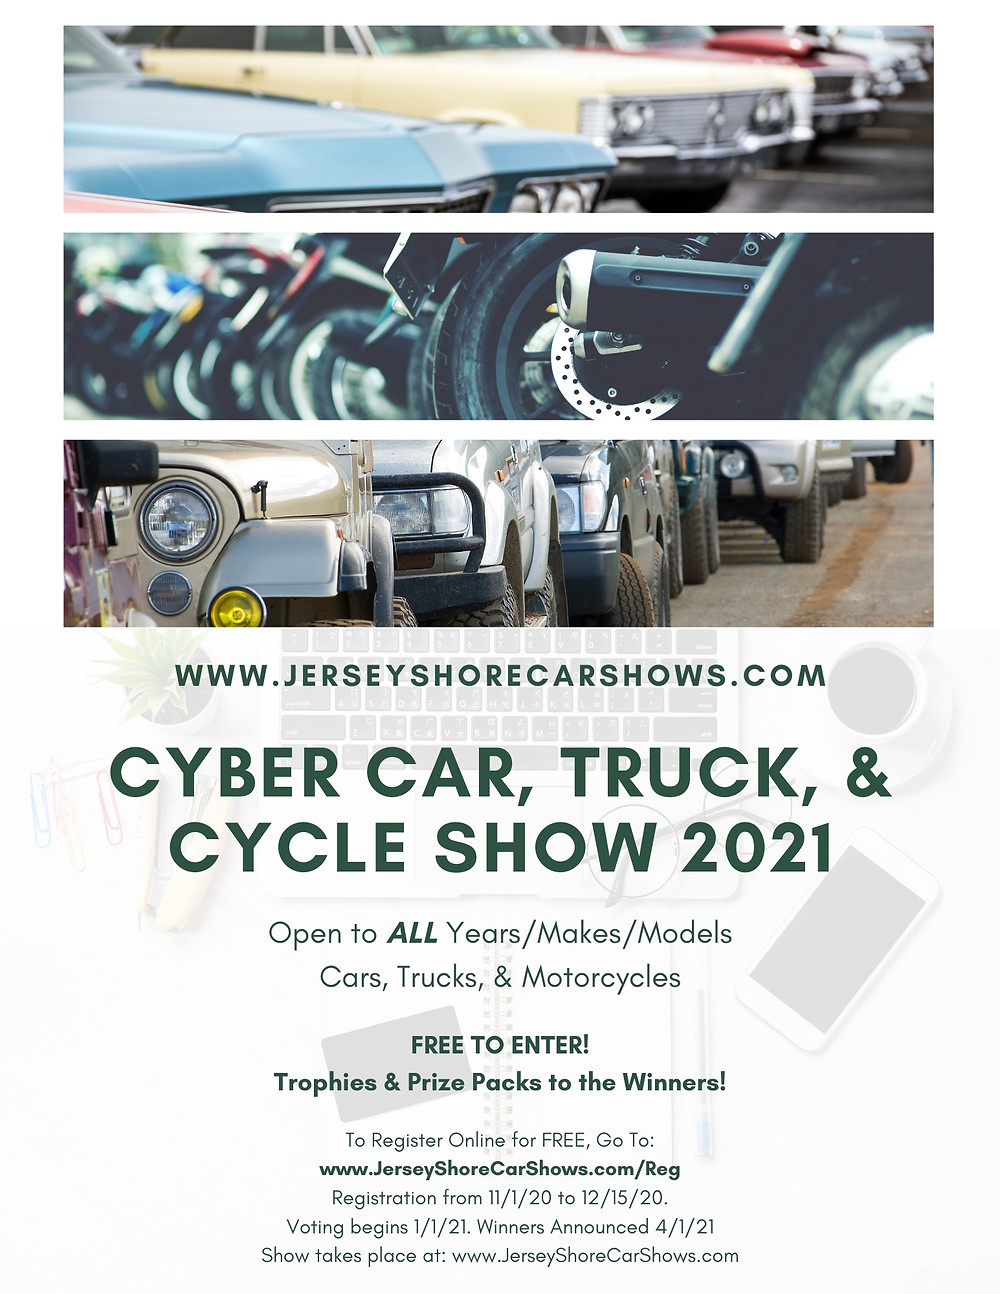 2nd Annual Cyber Car, Truck, and Cycle Show